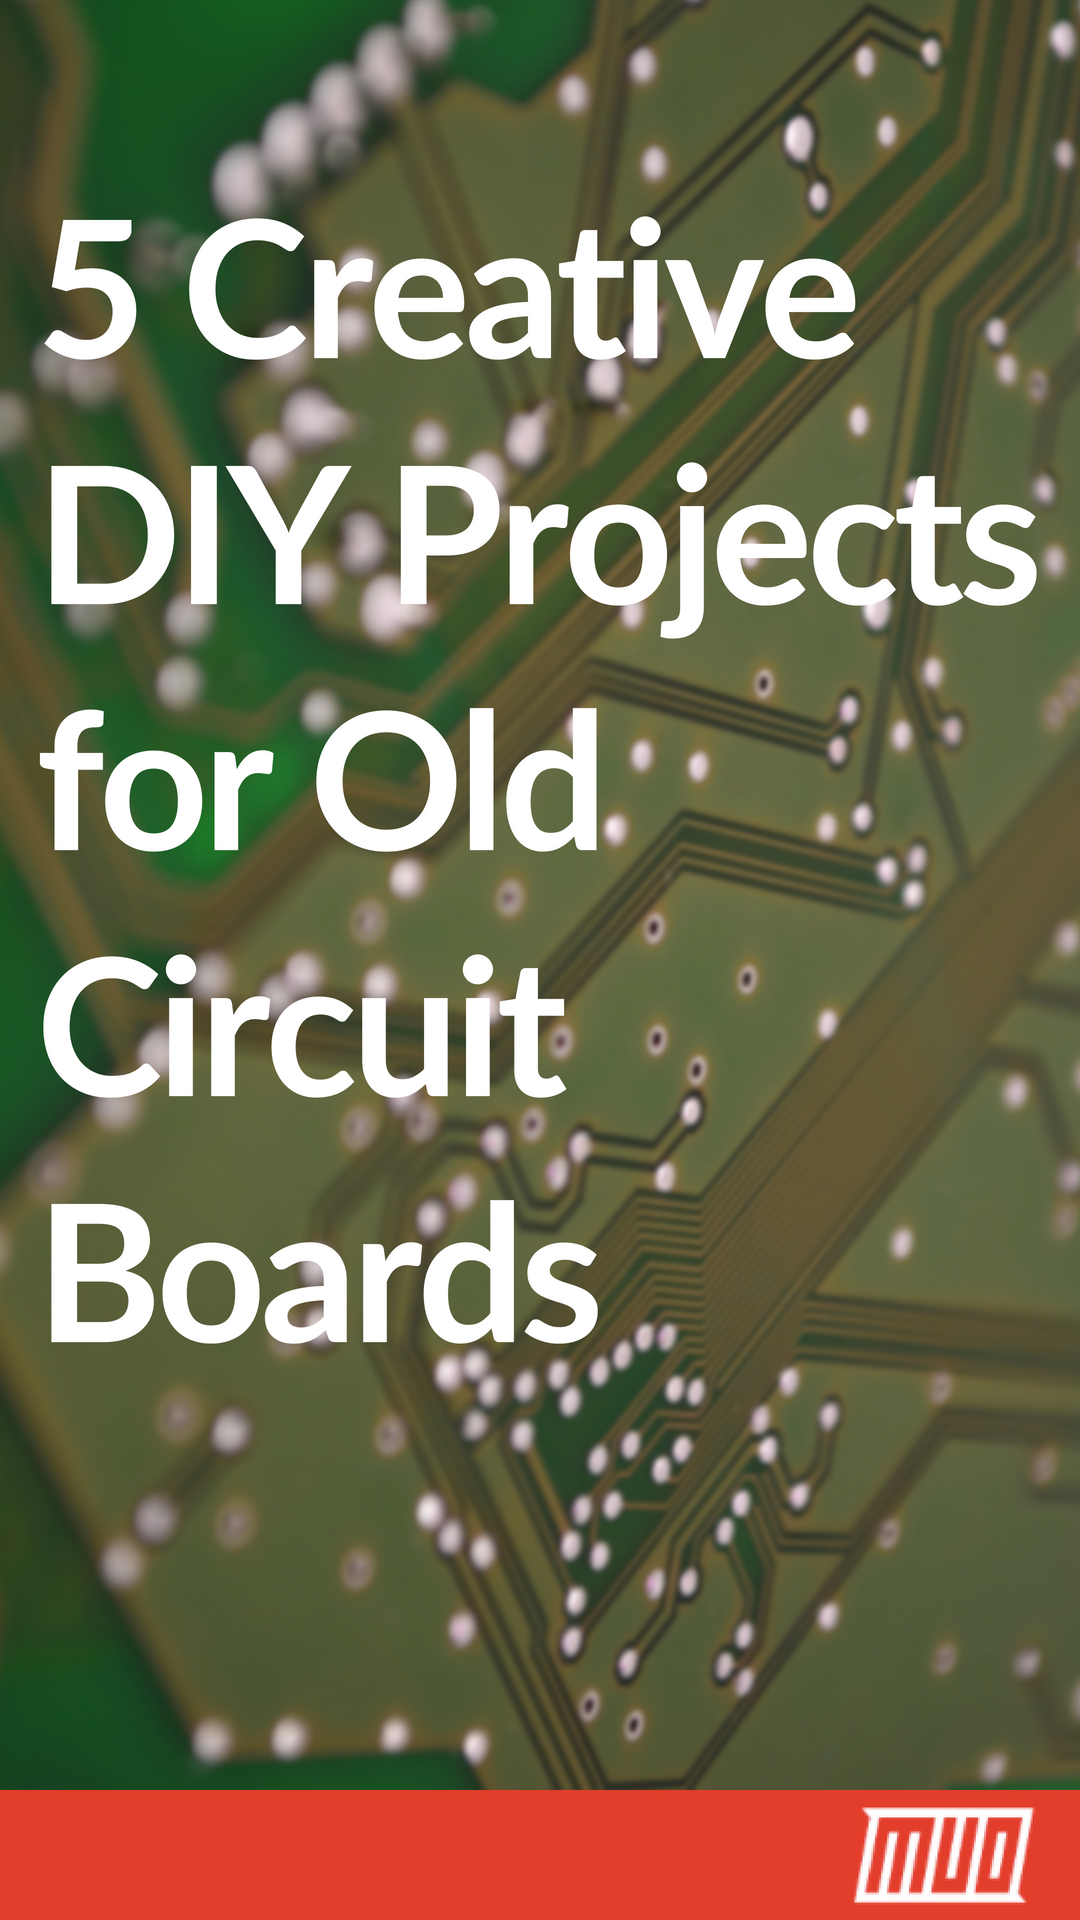 Picture Of Old Circuit Board 5 Creative Diy Projects For Boards Technology Upcycle Reuse Cuircuitboard Electronics